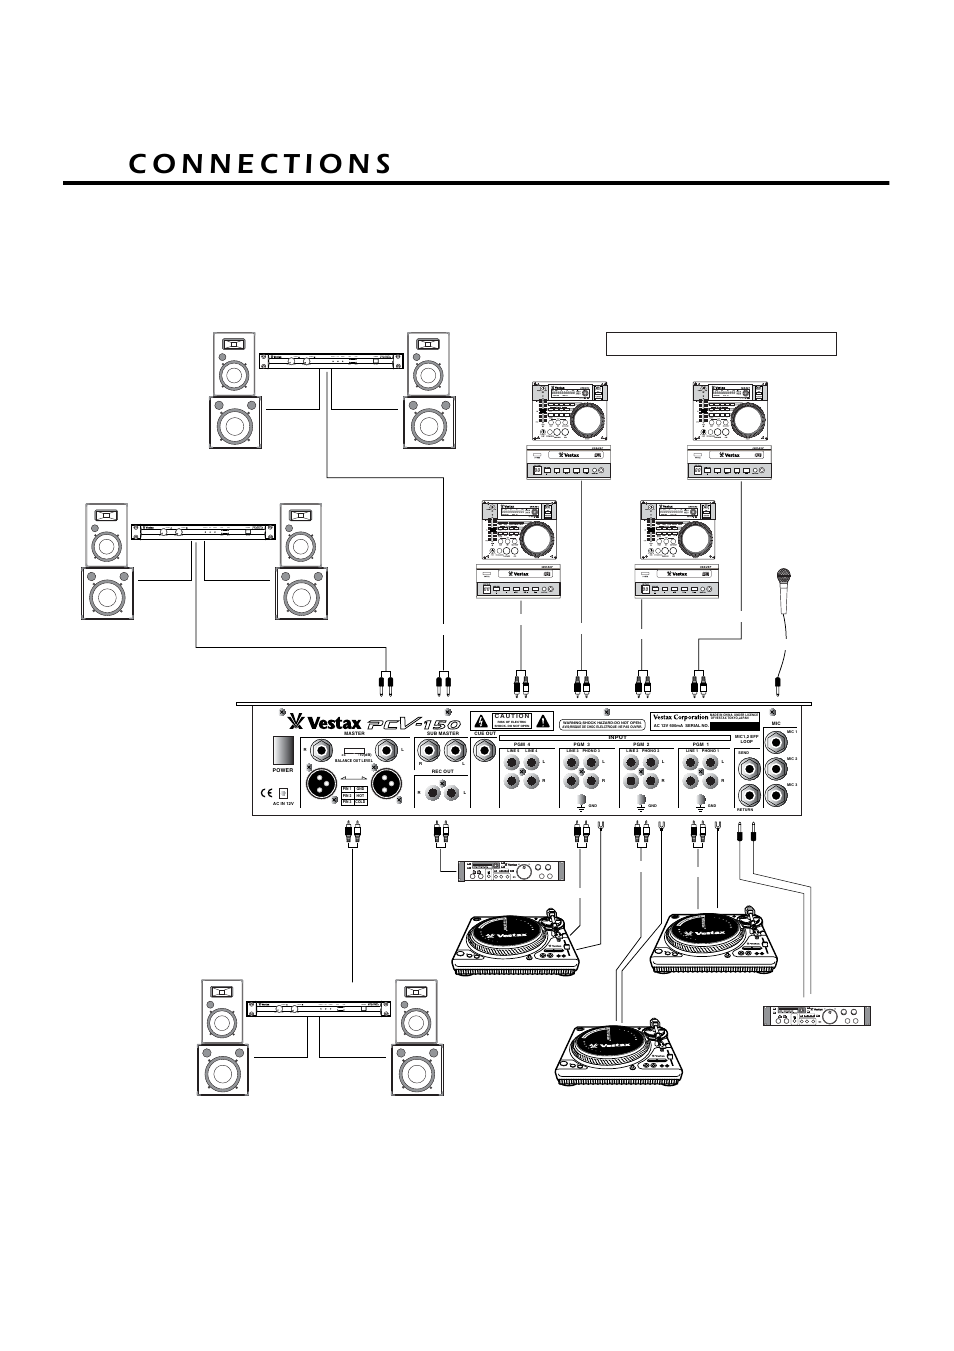 Cd, md player, tap | Vestax PCV-150 User Manual | Page 10